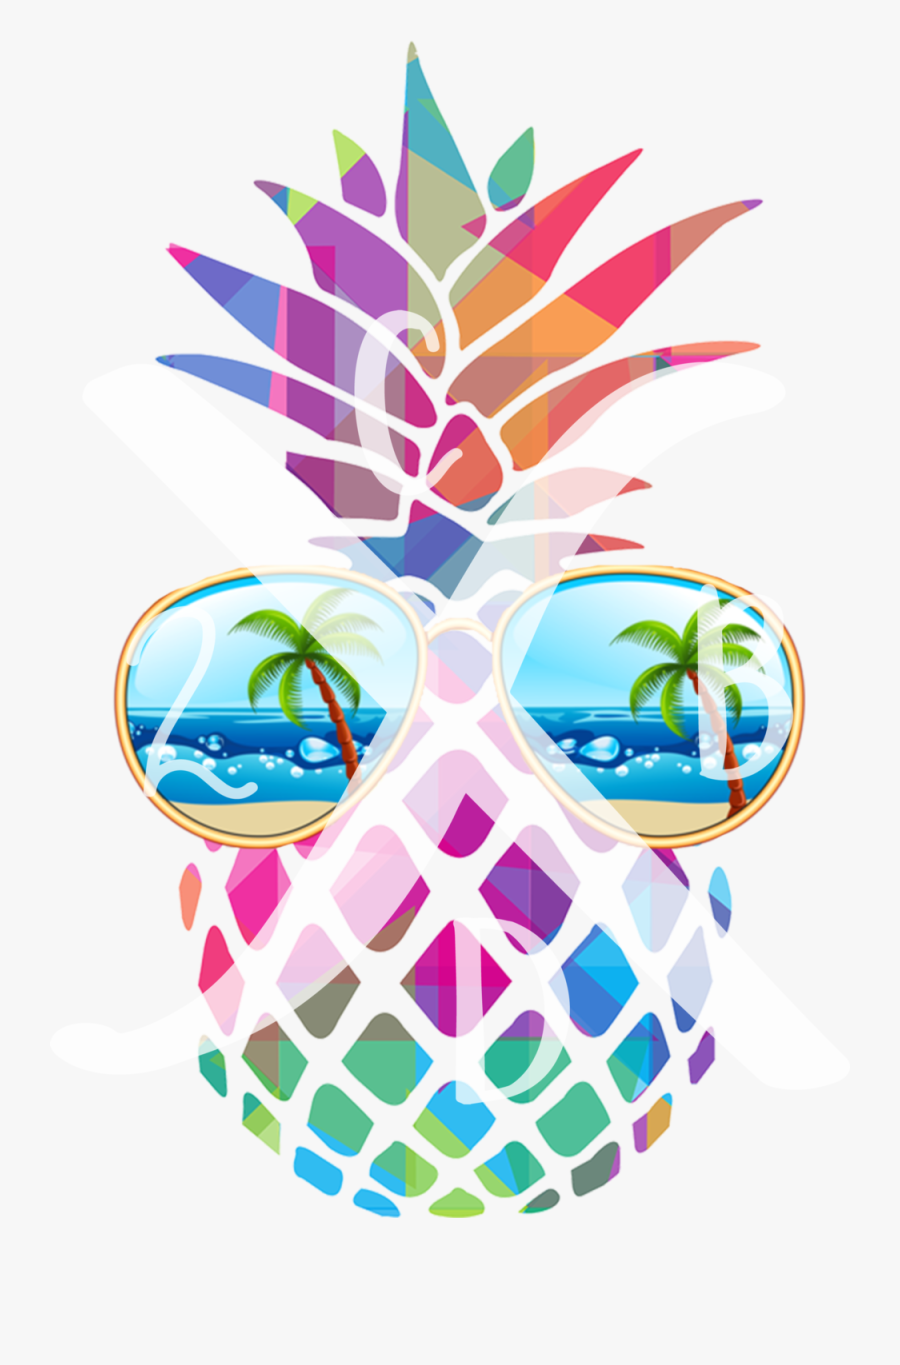 Pineapplewithsunglasses1 - Black And White Pineapple Sticker, Transparent Clipart